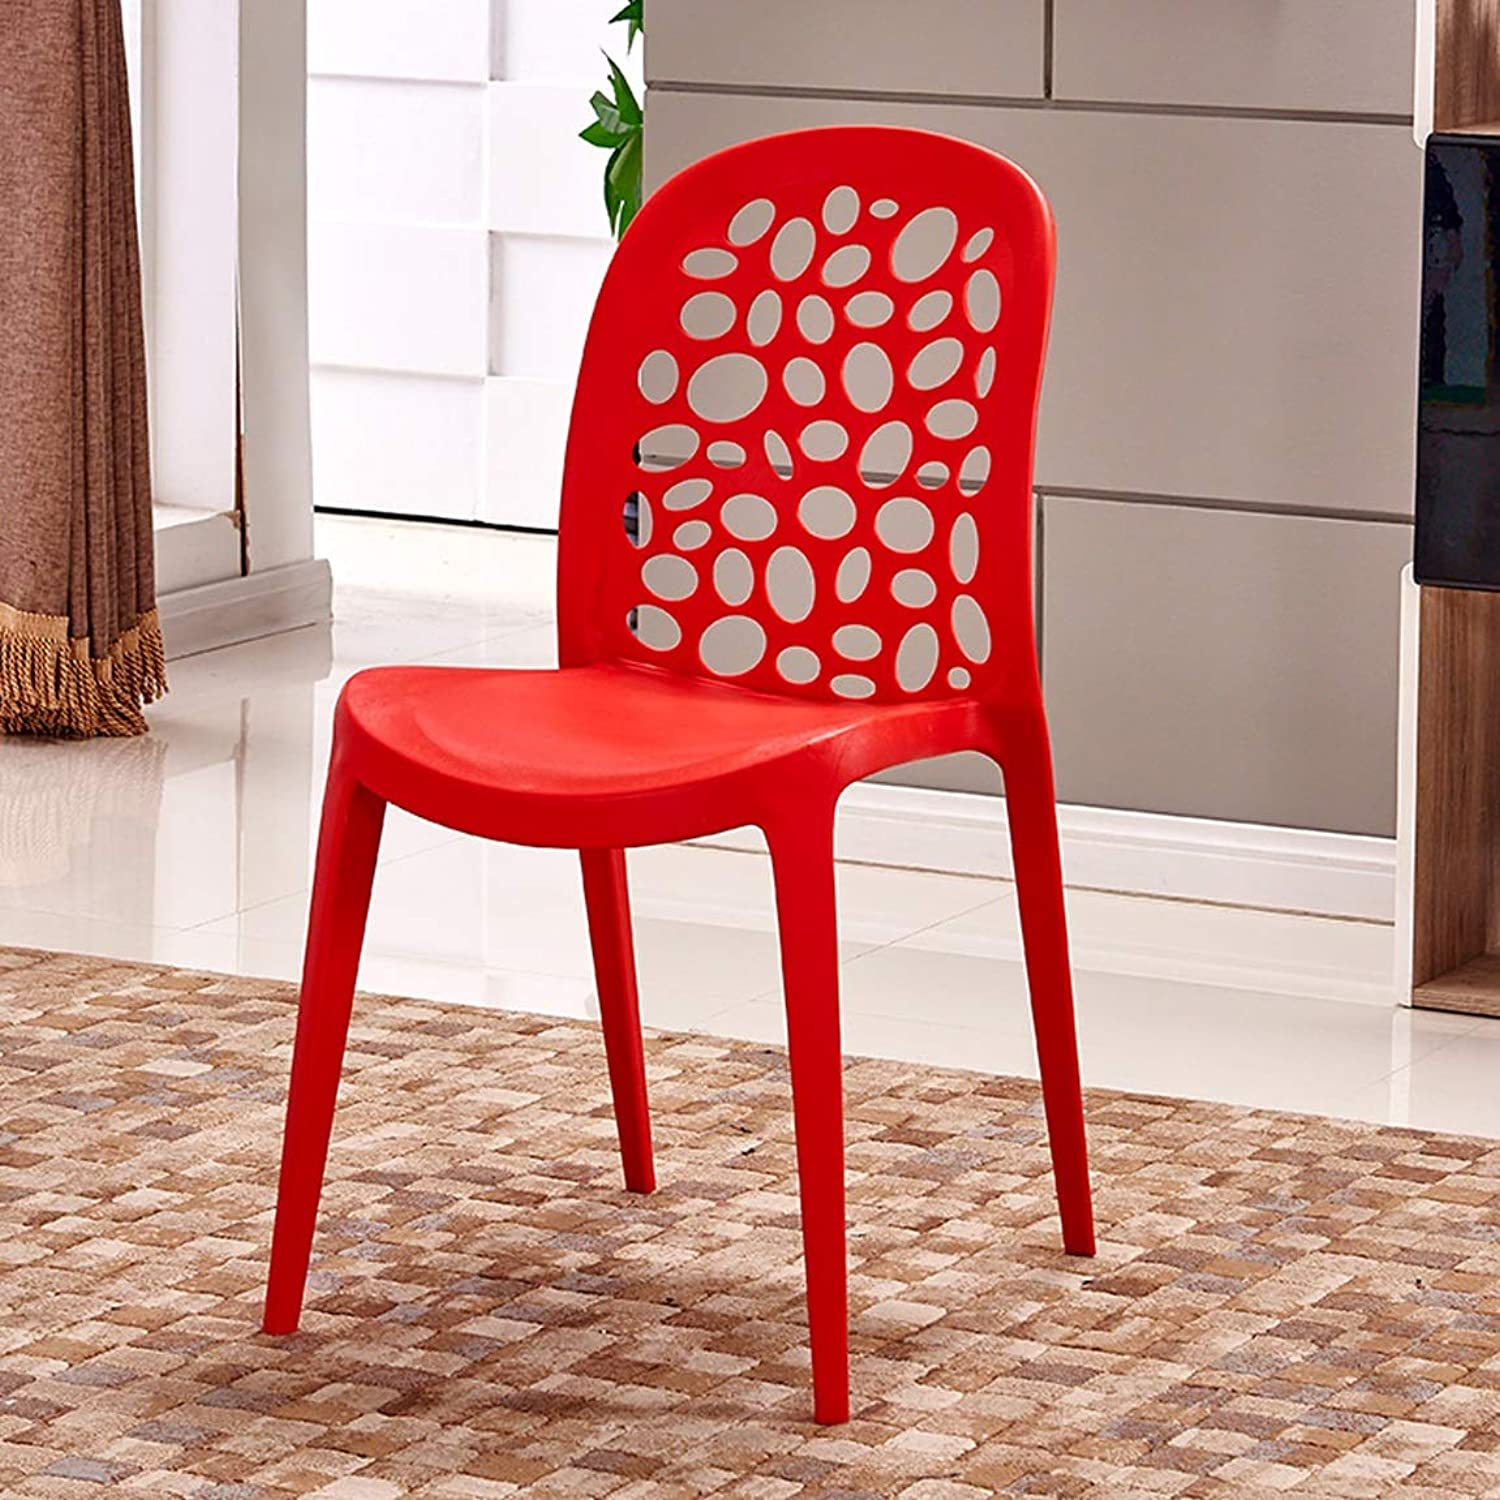 LRW Fashionable Plastic Home Chairs, Simple Chairs, Modern Chairs, Modern Stools, Leisure Dining Chairs, Red